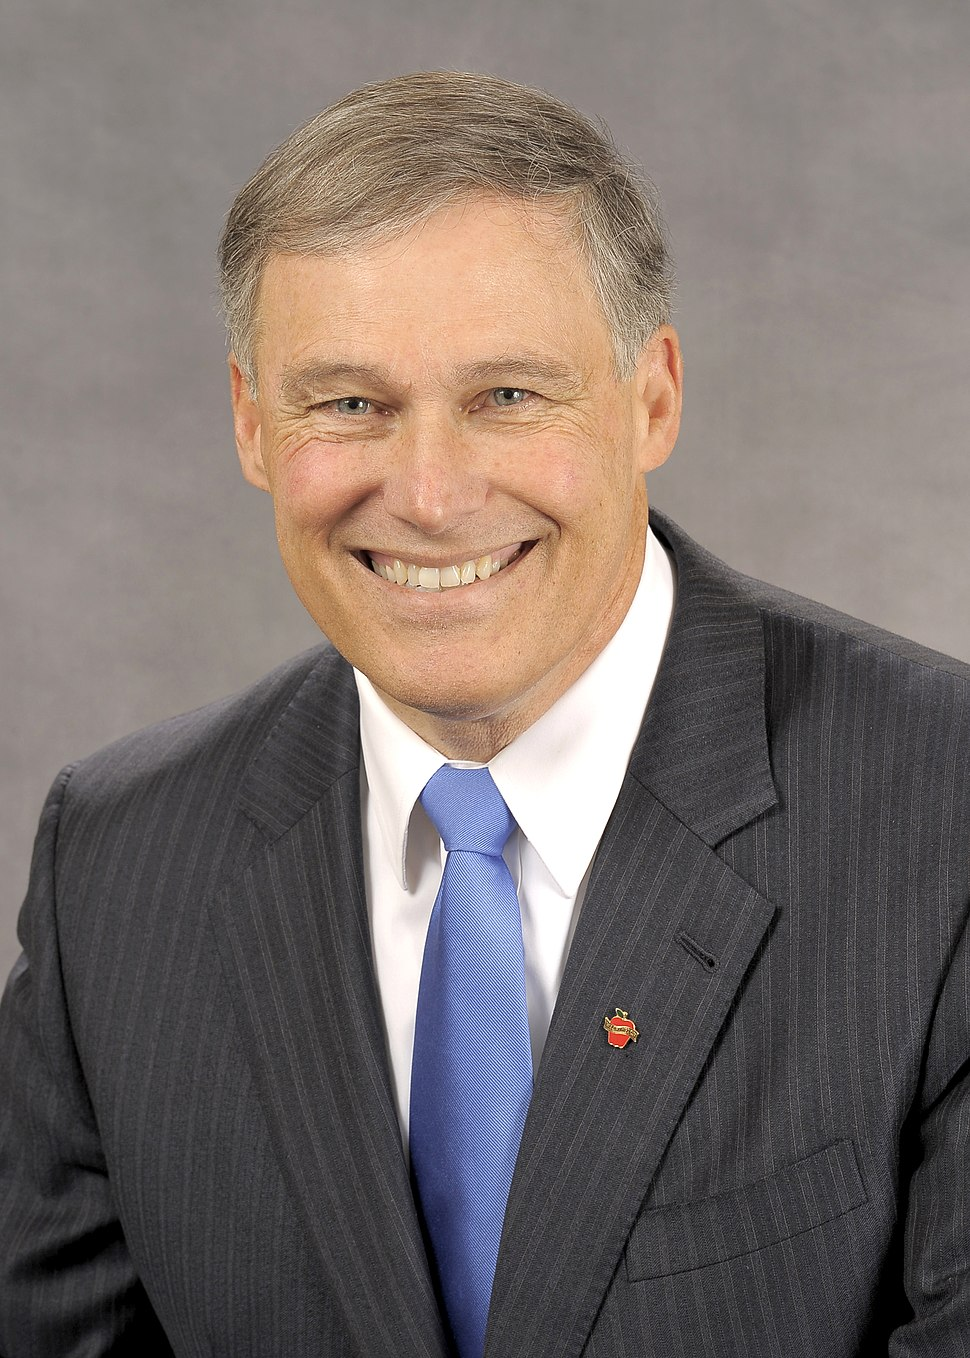 Jay Inslee official portrait